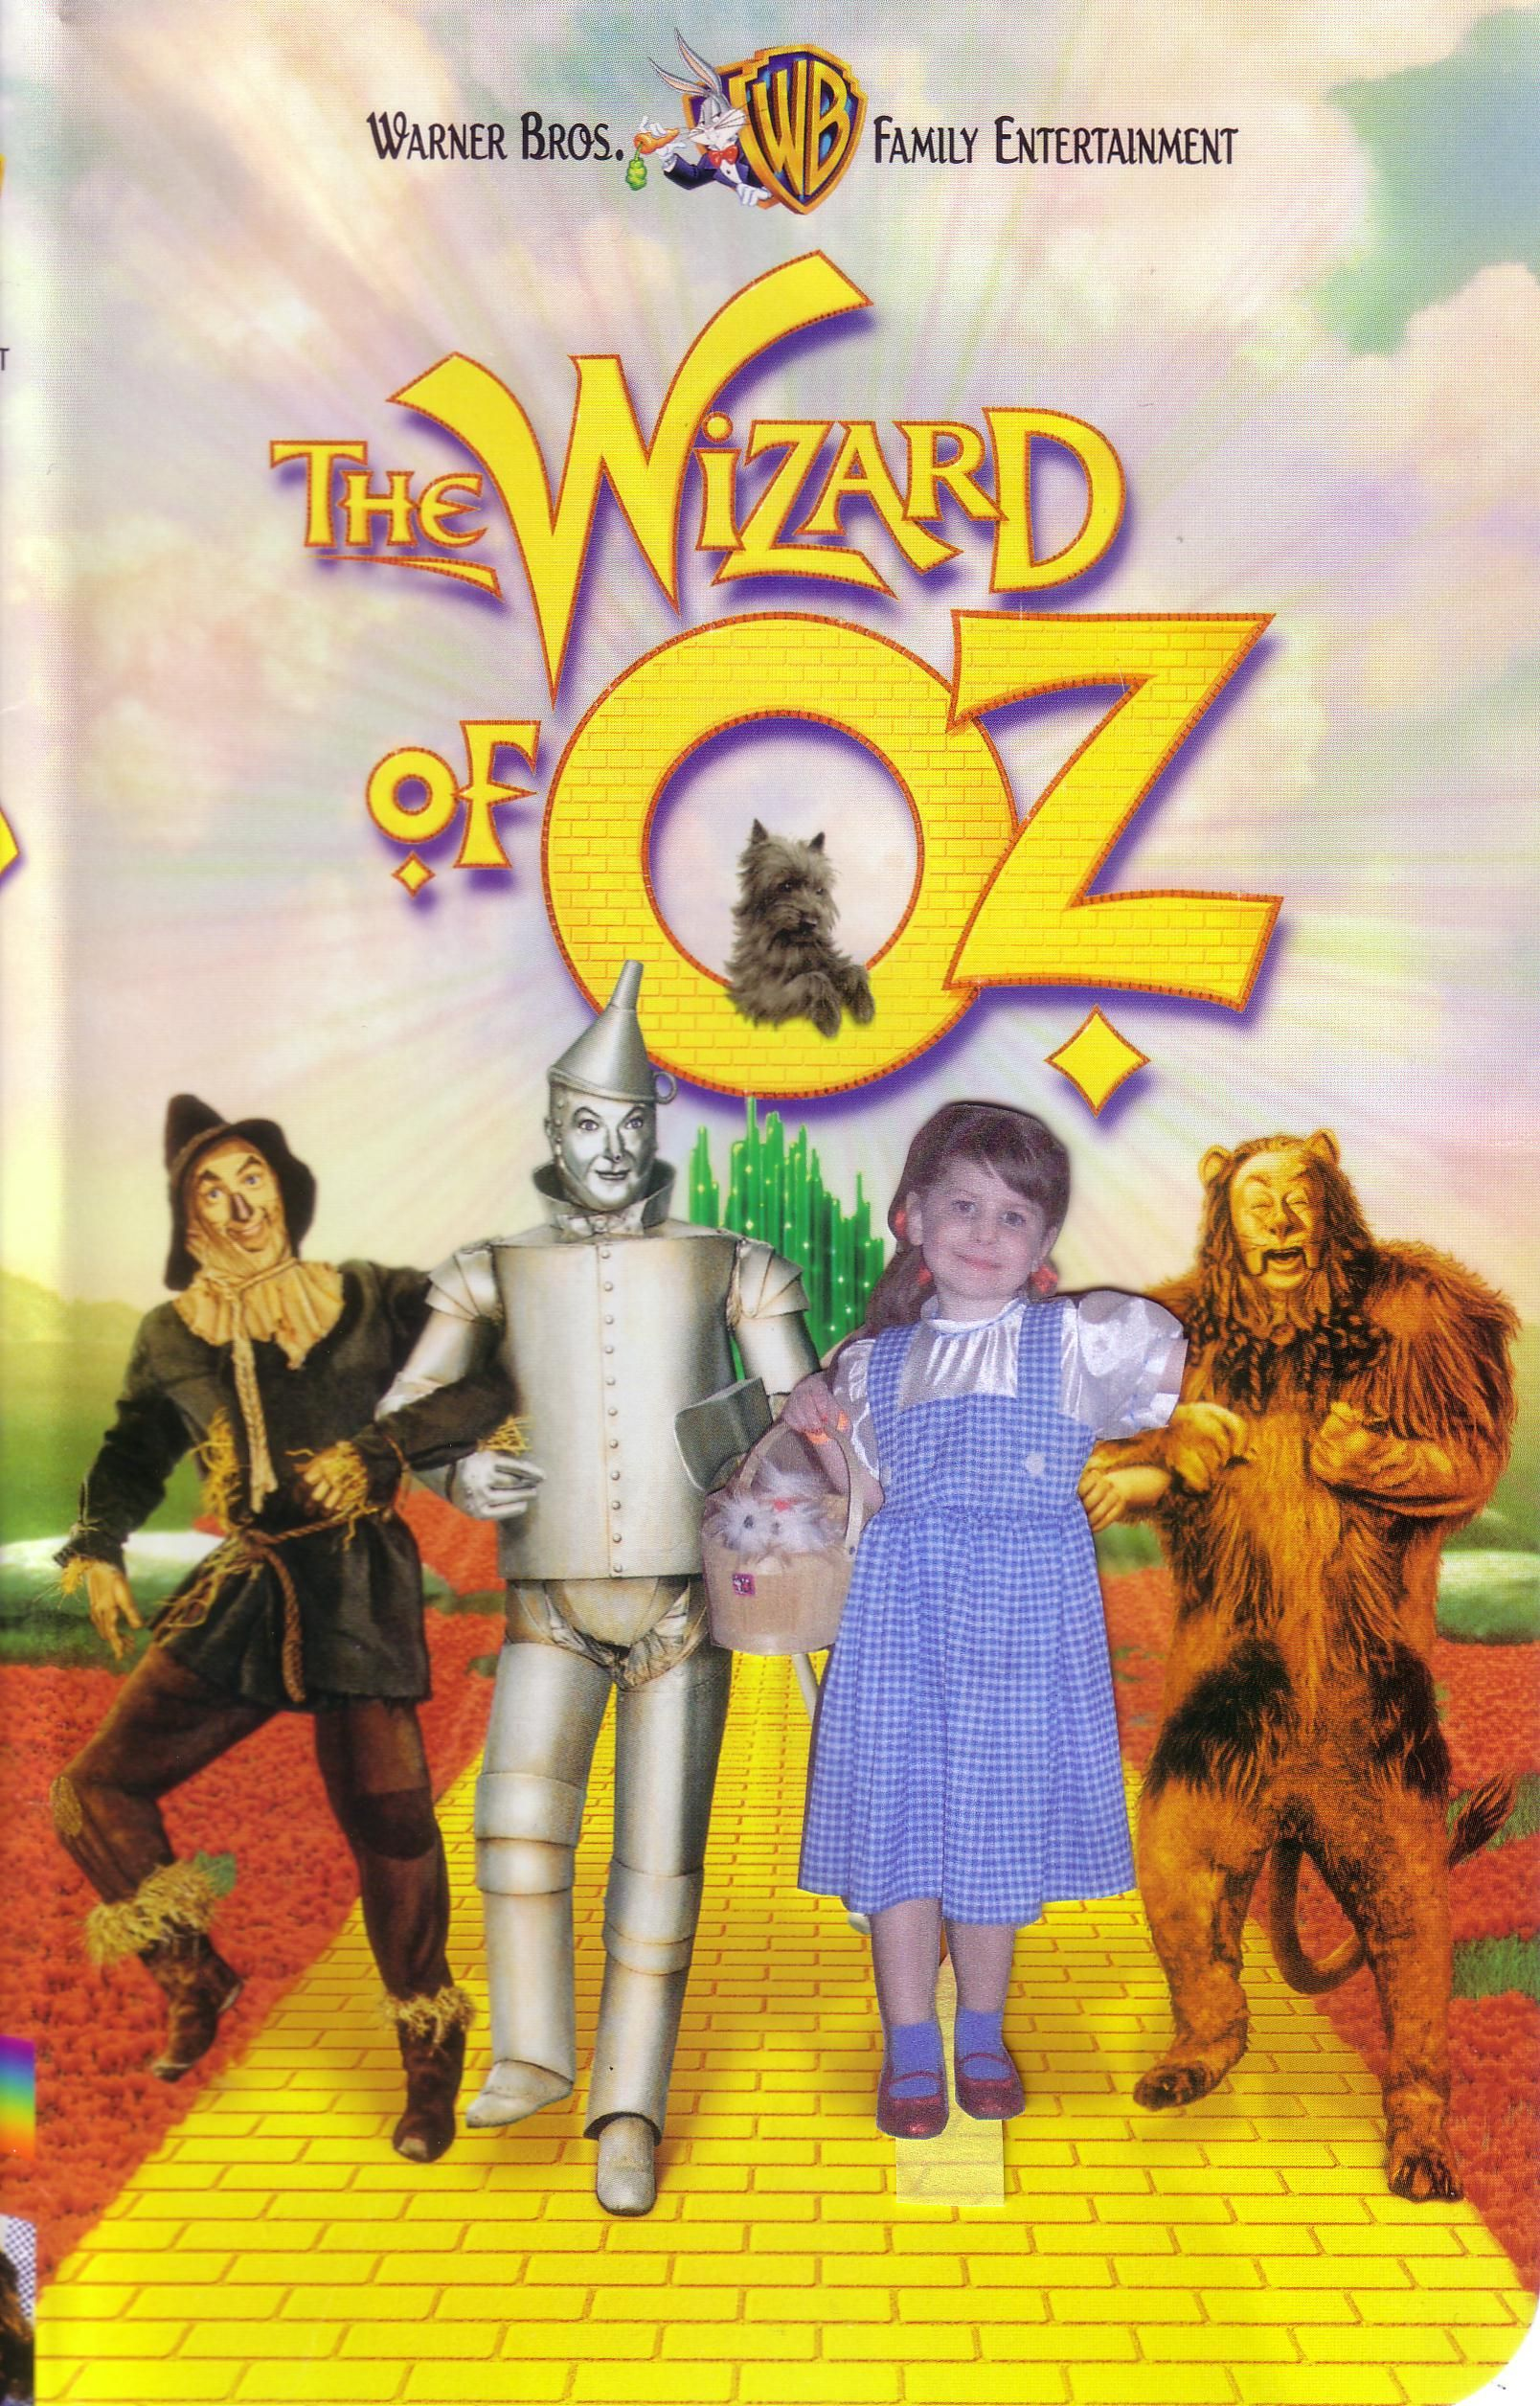 Pasted daughter's face on image for her wizard of oz